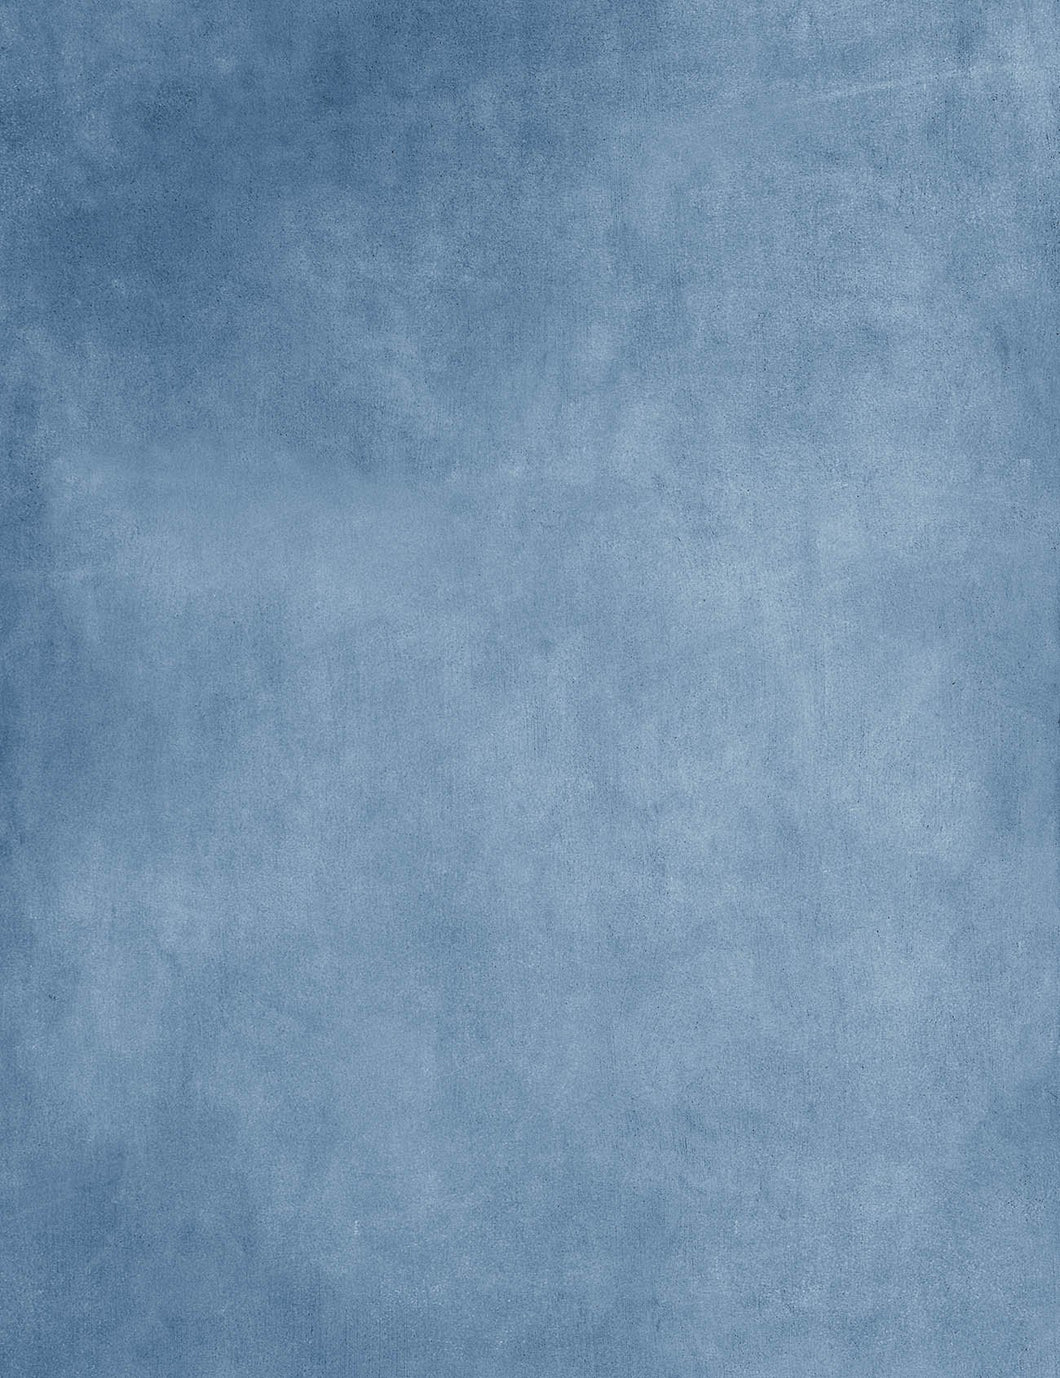 Baby Blue Old Master Backdrop For Photography - Shop Backdrop